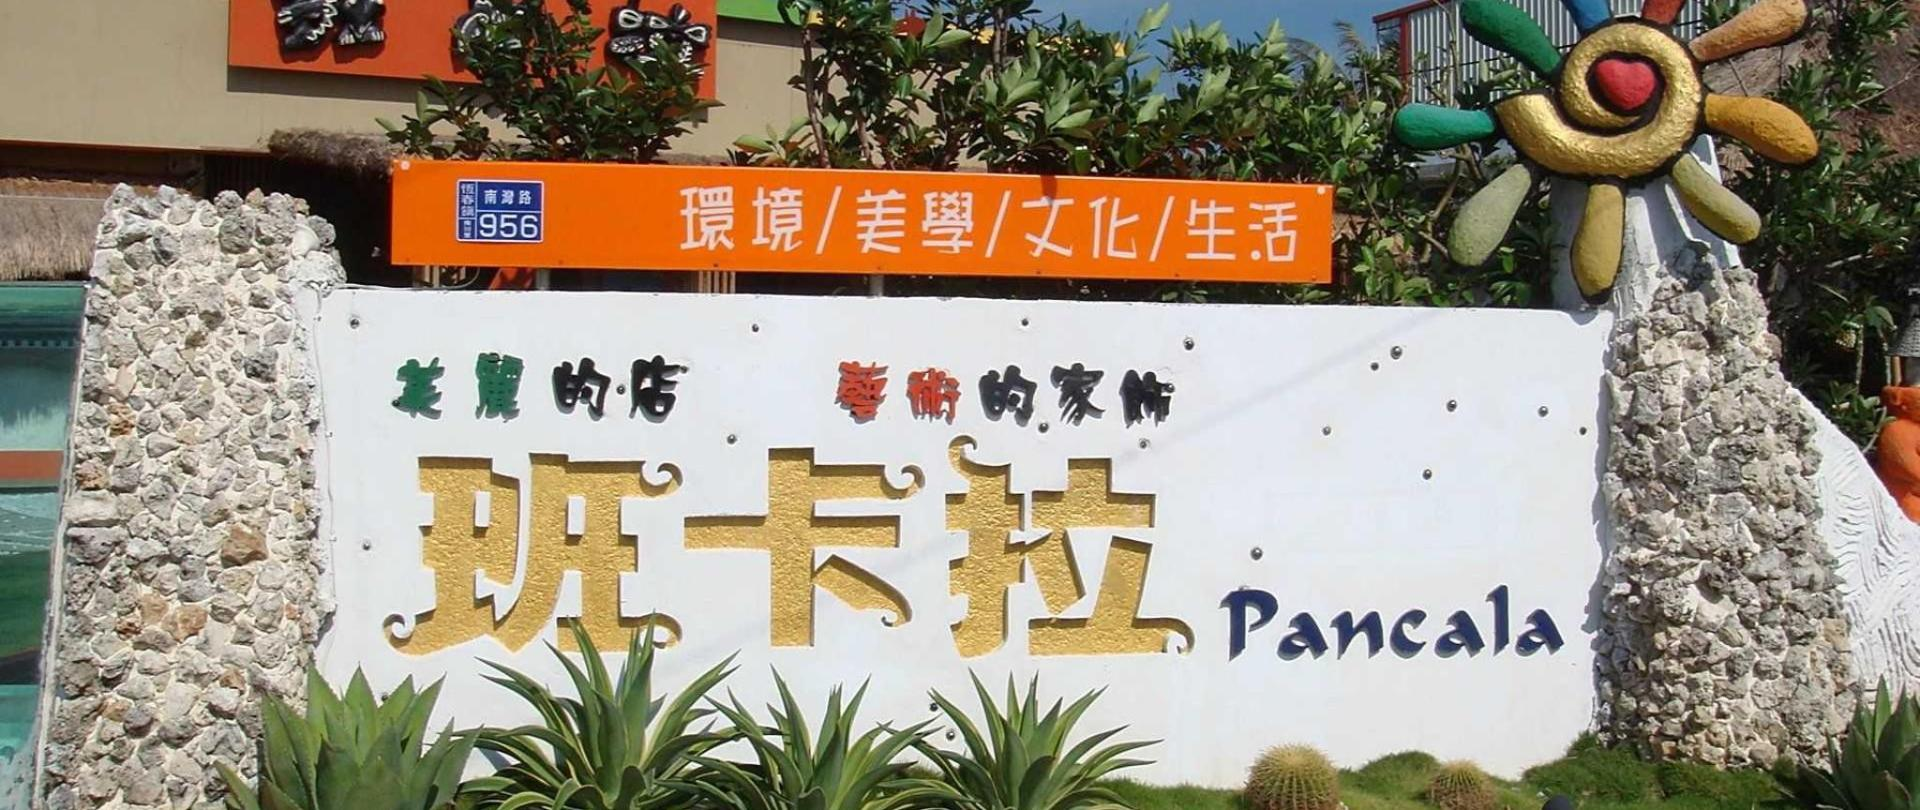 pancala-vacation-inn-signboard.jpg